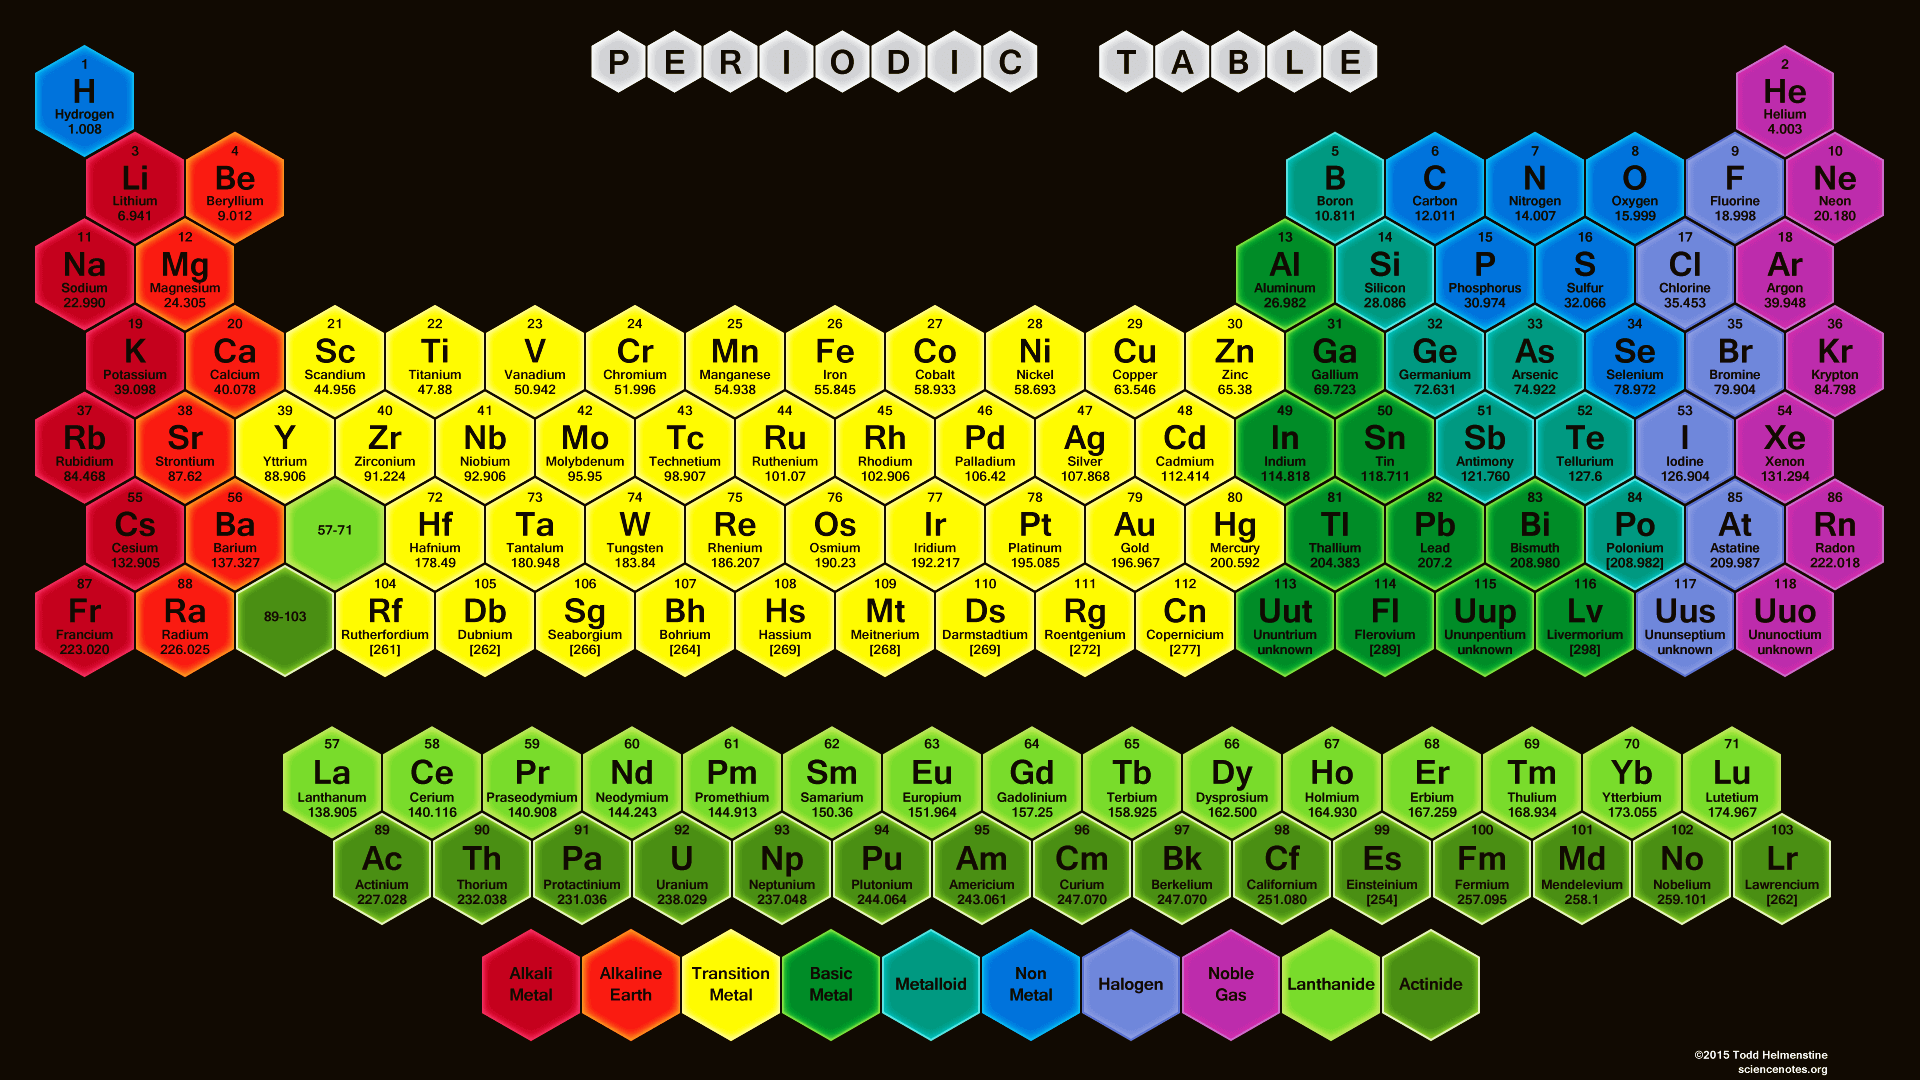 Periodic table wallpapers science notes and projects color hexagon periodic table wallpaper urtaz